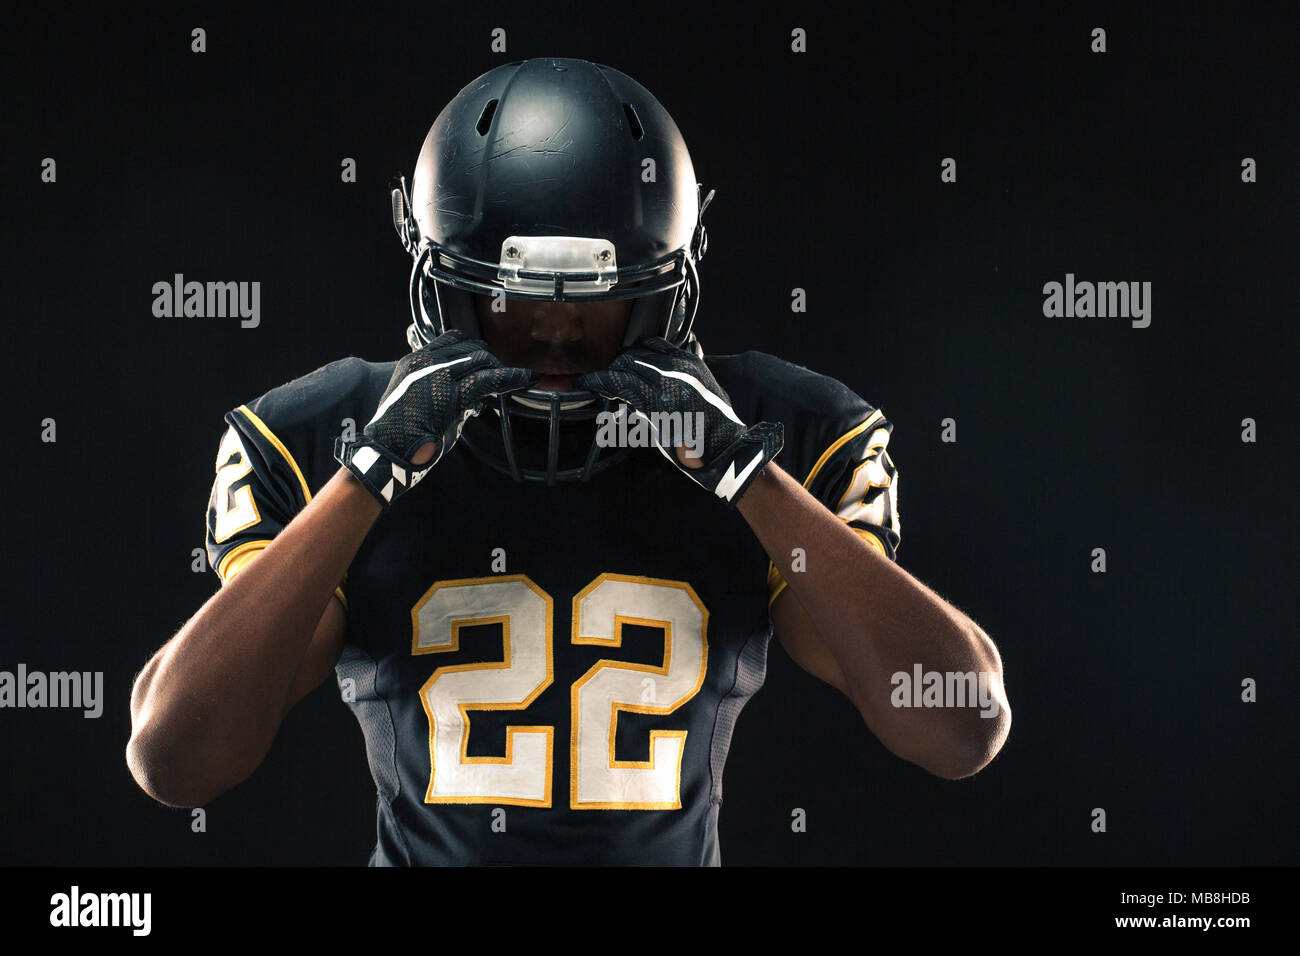 African American Football player. Immagini Stock